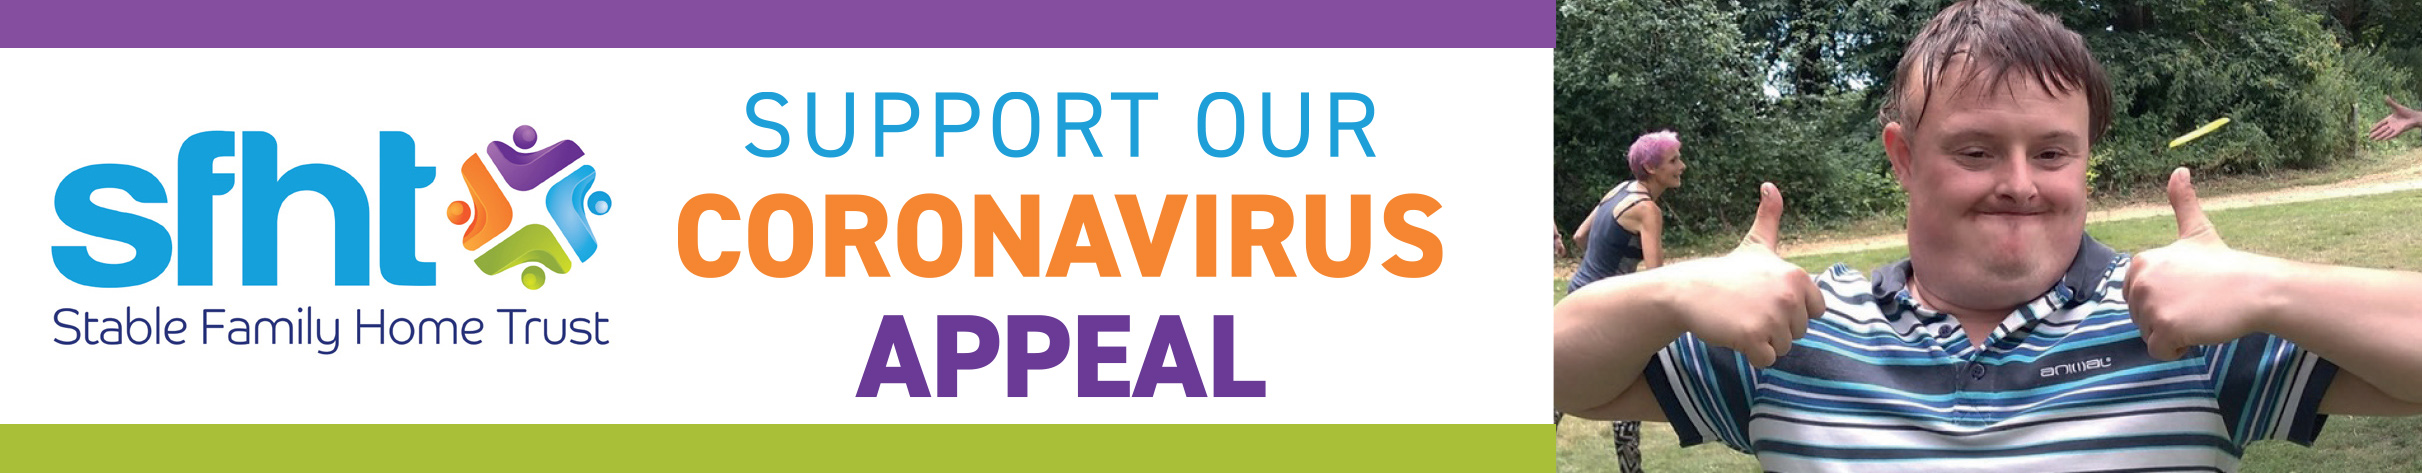 SFHT Covid Appeal banner 2